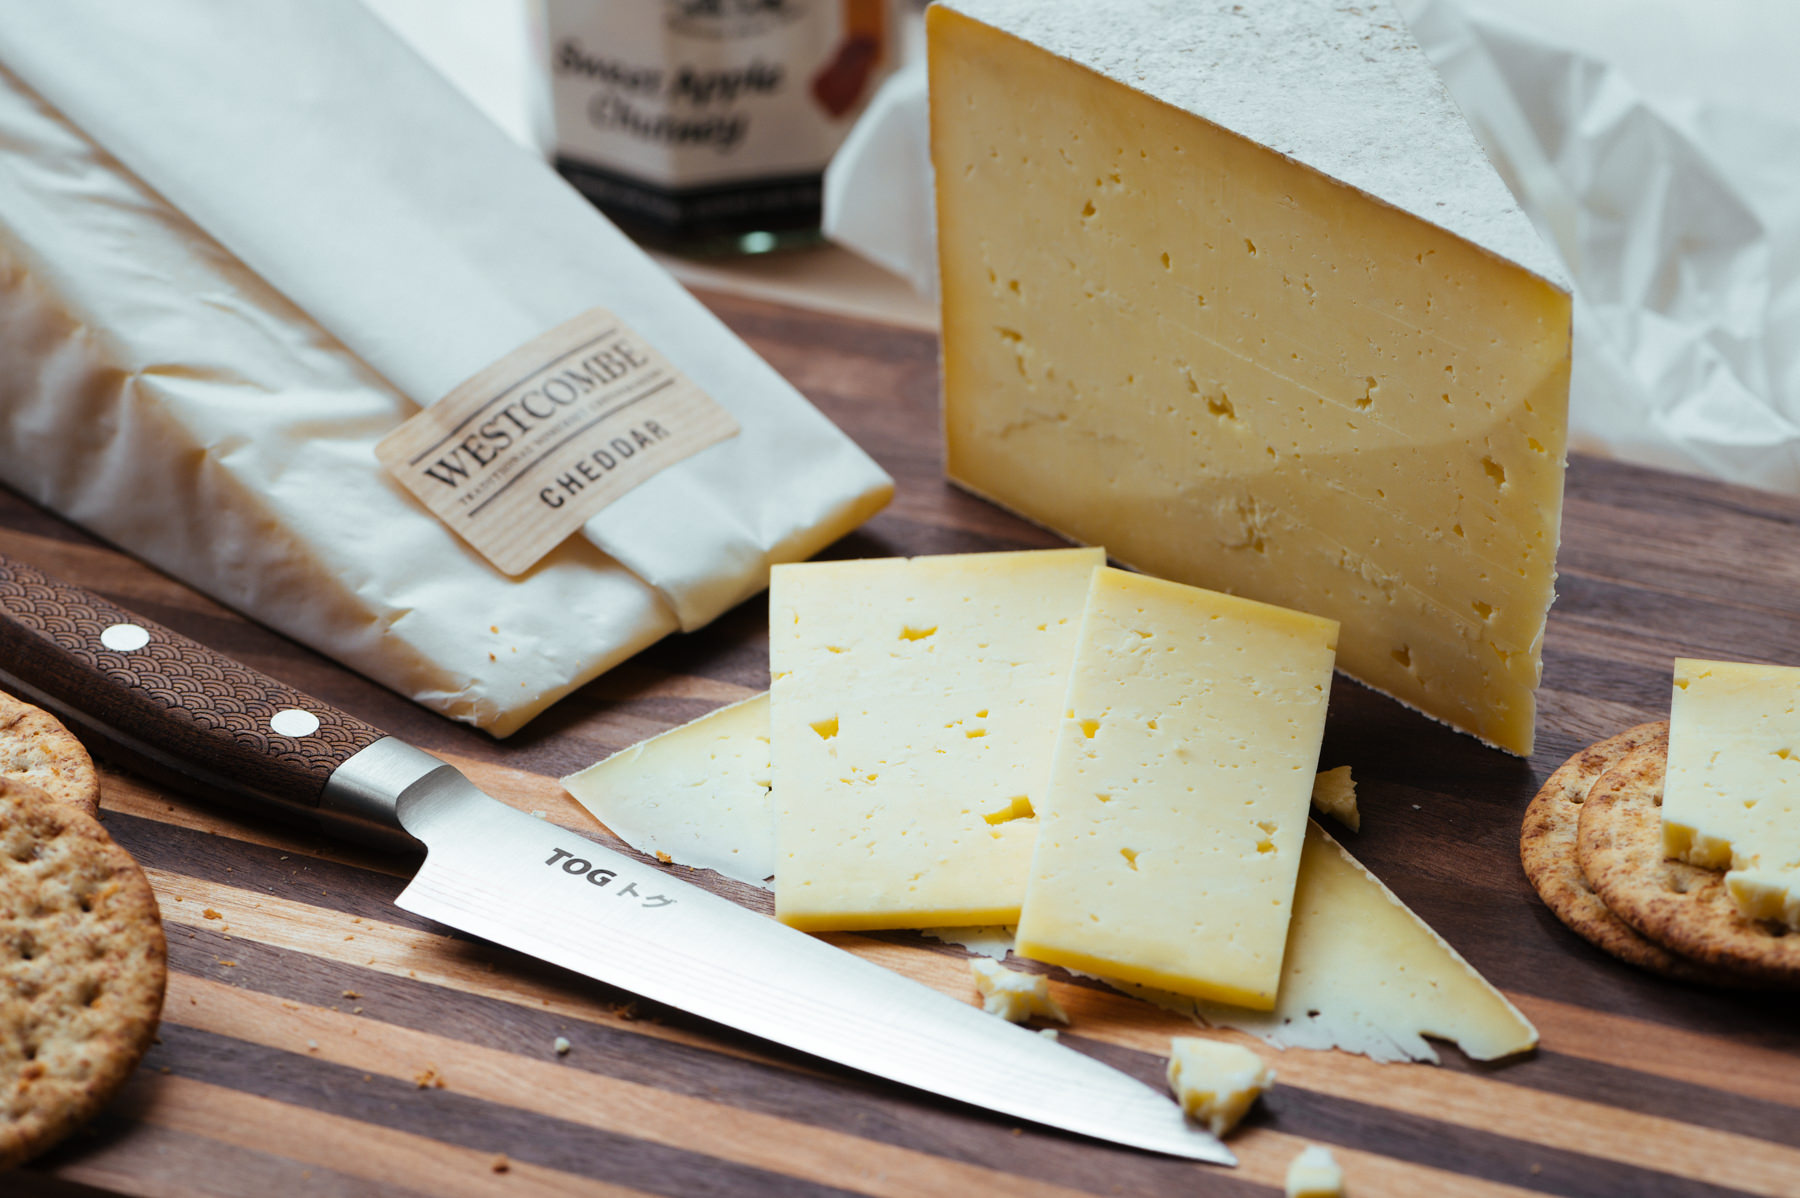 Westcombe Dairy Cheddar Cheese